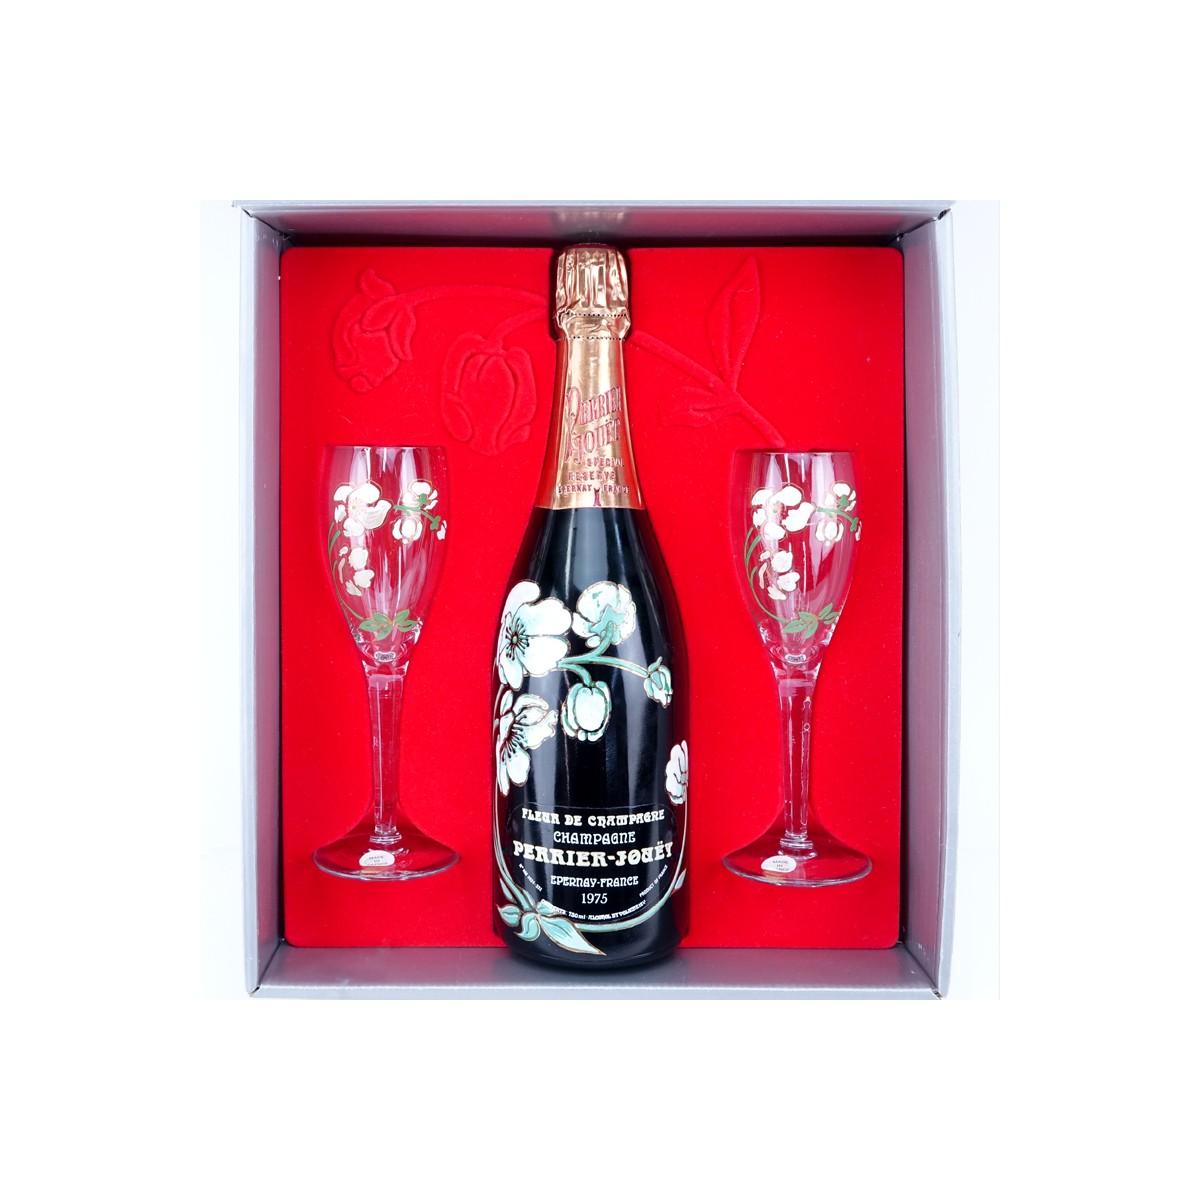 Vintage 1975 Perrier-Jouet Fleur de Champagne Bottle in Presentation Box. Includes two crystal cham